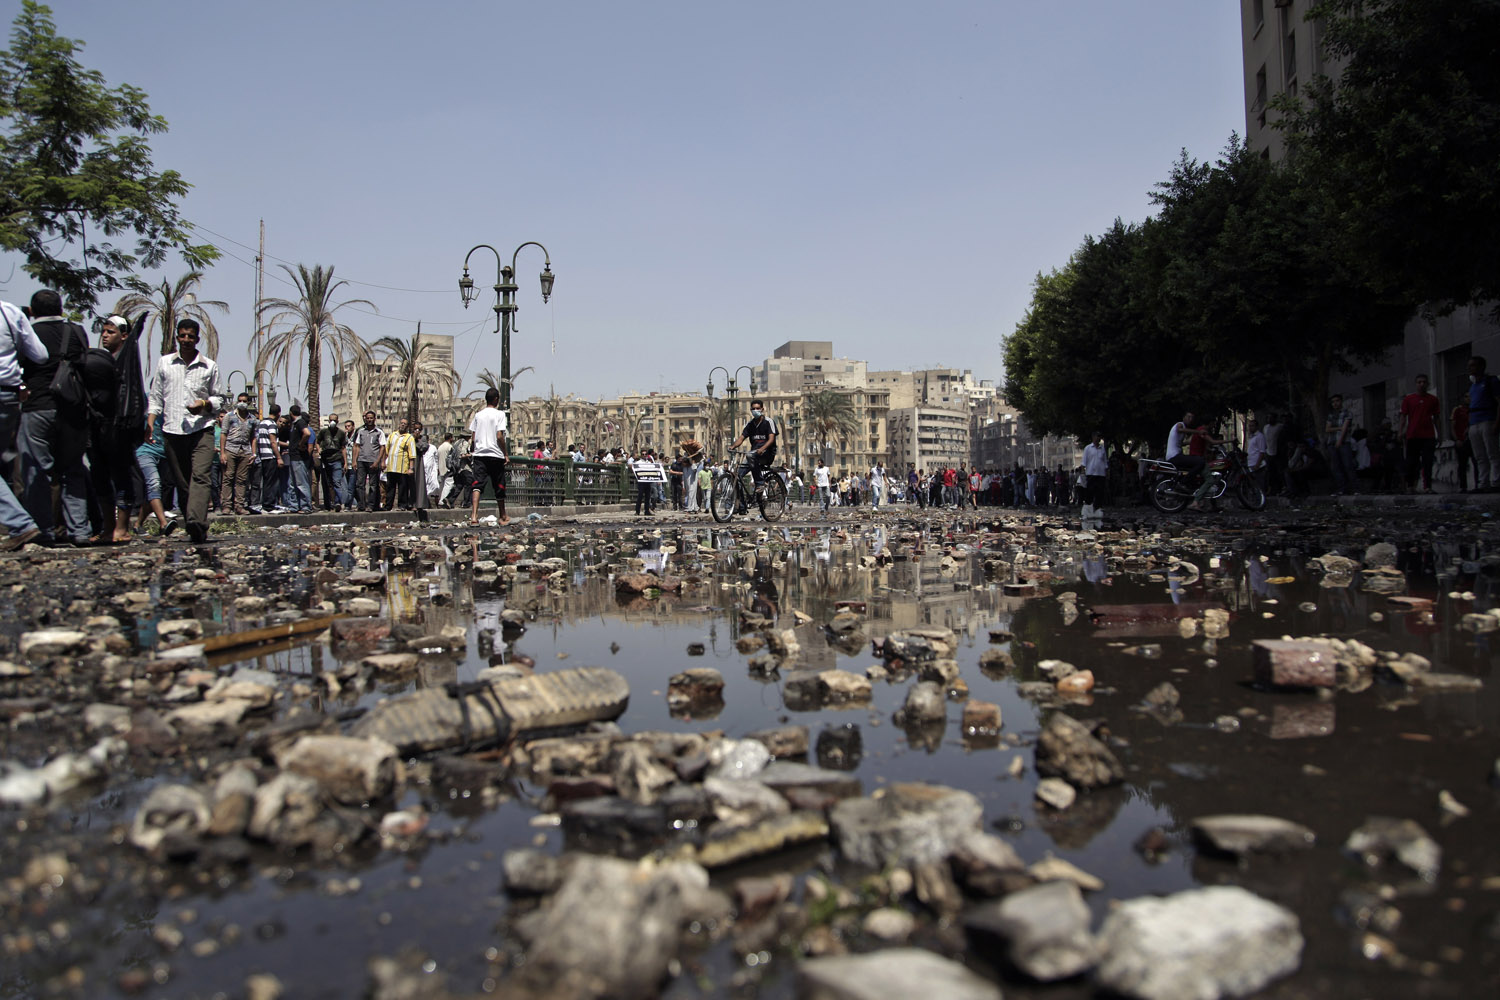 Sept. 14, 2012. Egyptian protesters clash with security forces, not shown, near the U.S. embassy in Cairo. The protests are part of widespread anger across the Muslim world about a film ridiculing Islam's Prophet Mohammed.